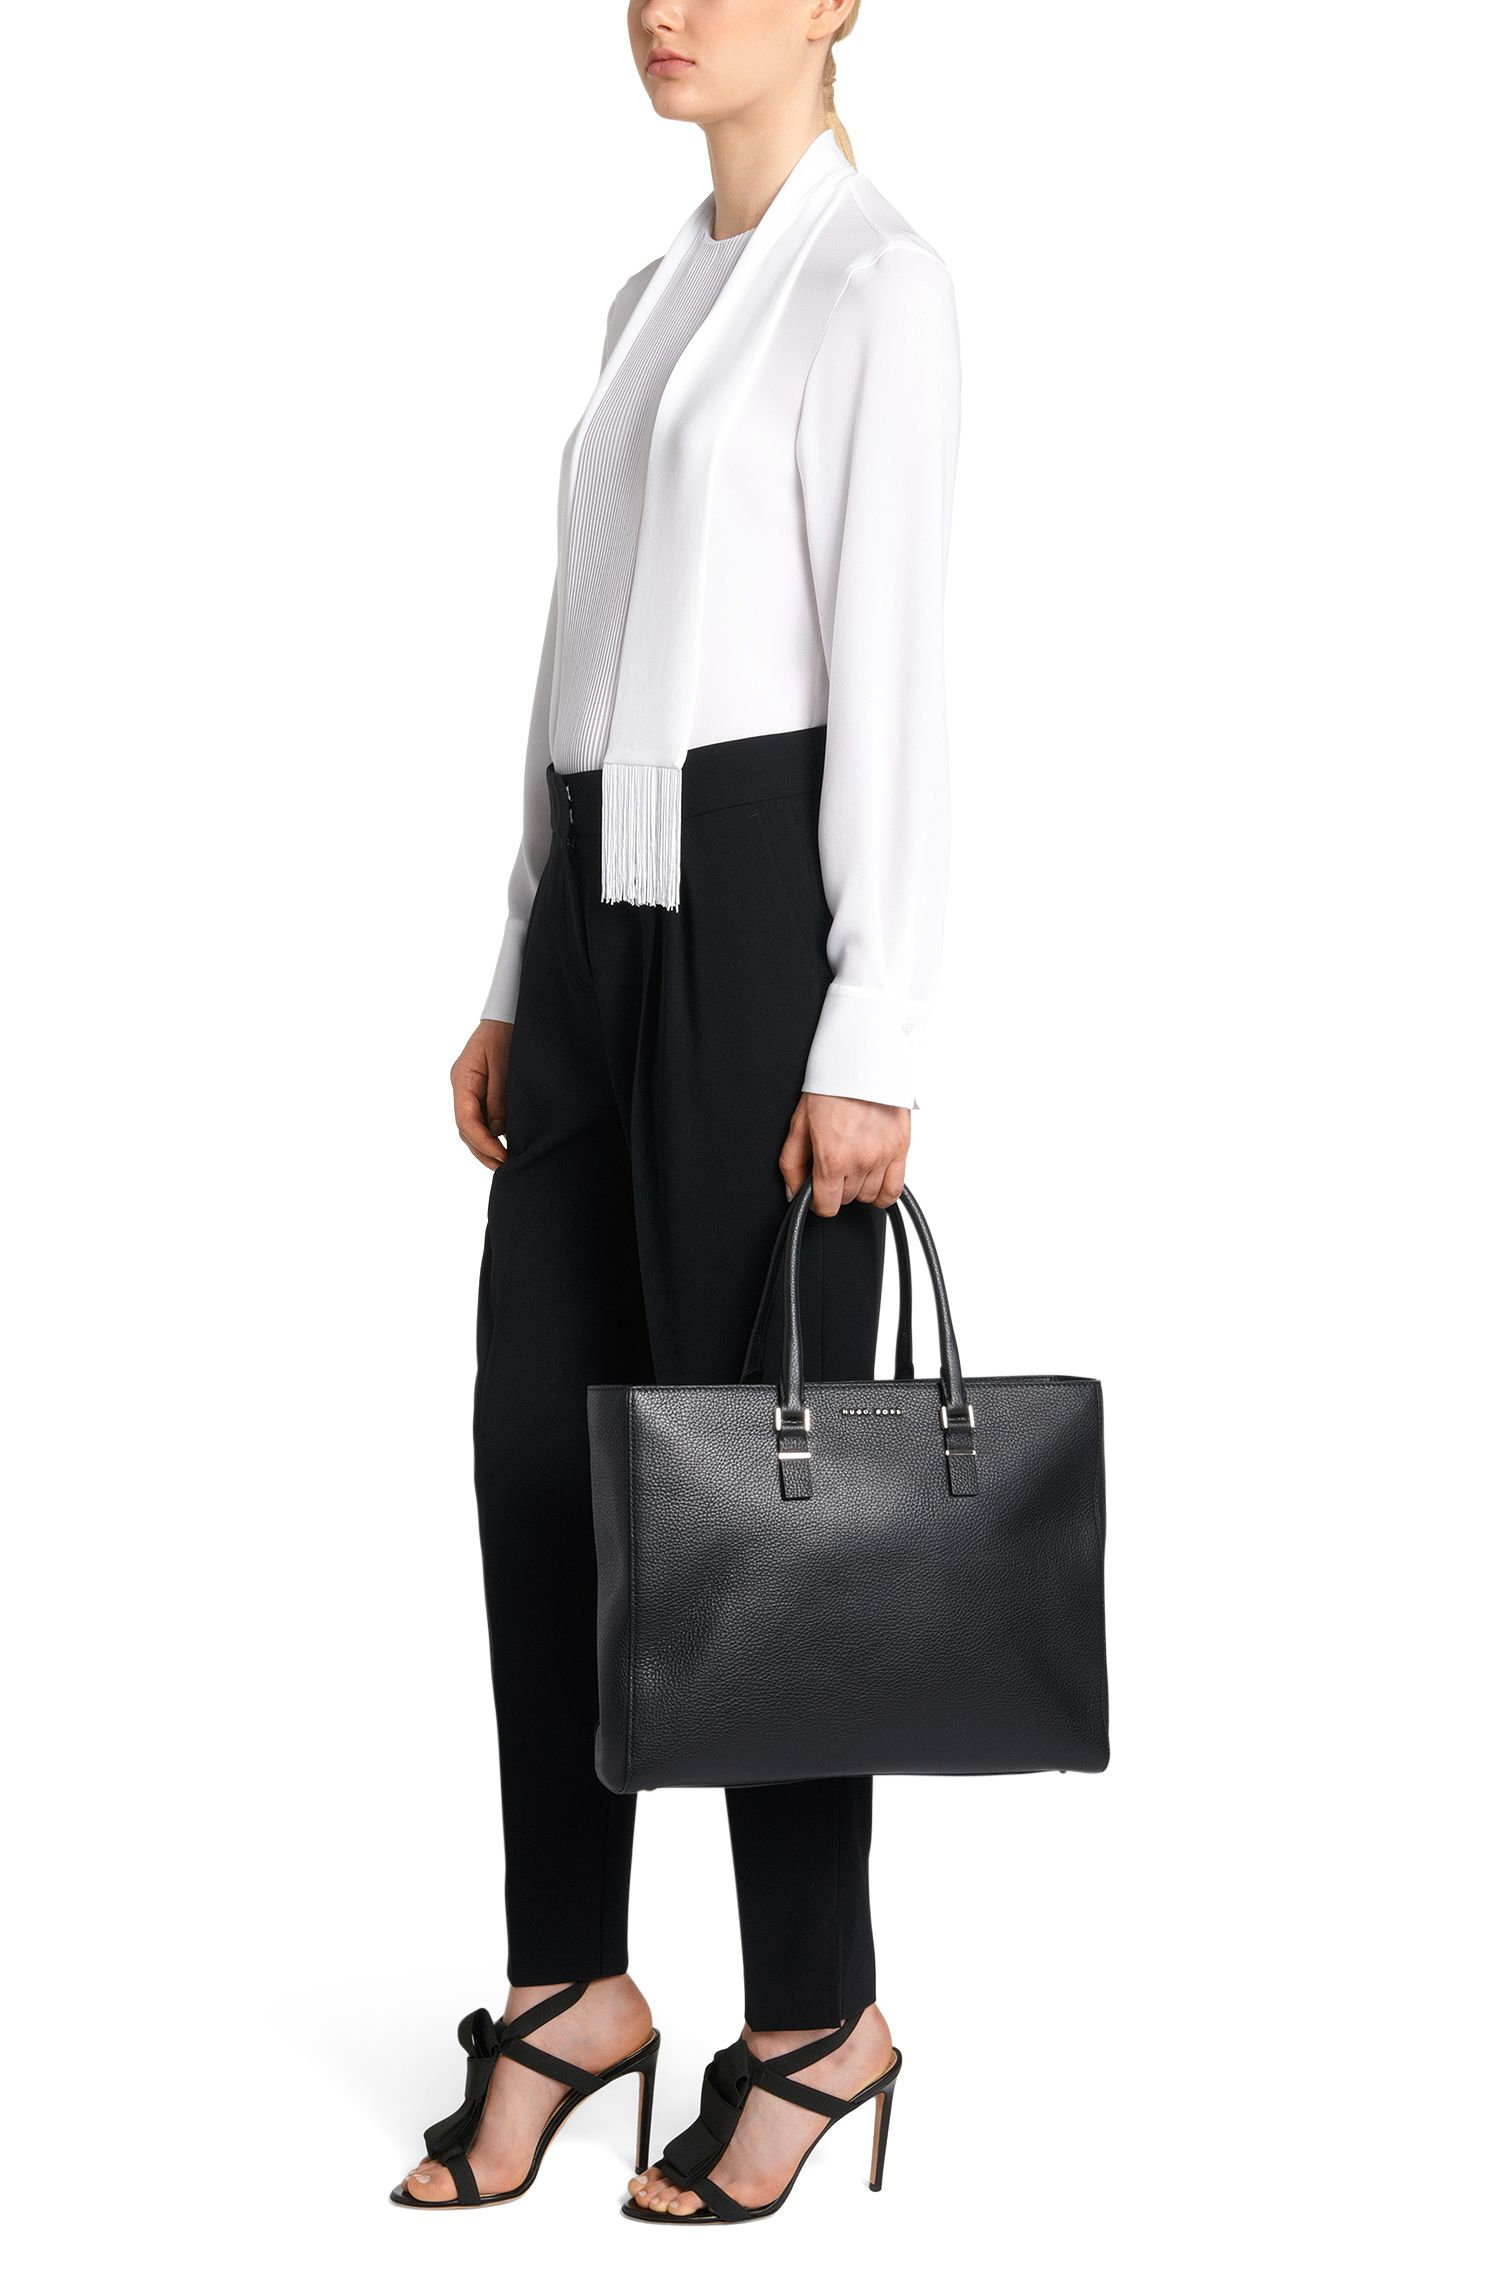 Workbag van luxueus Italiaans leer uit de Luxury Staple-collectie van BOSS